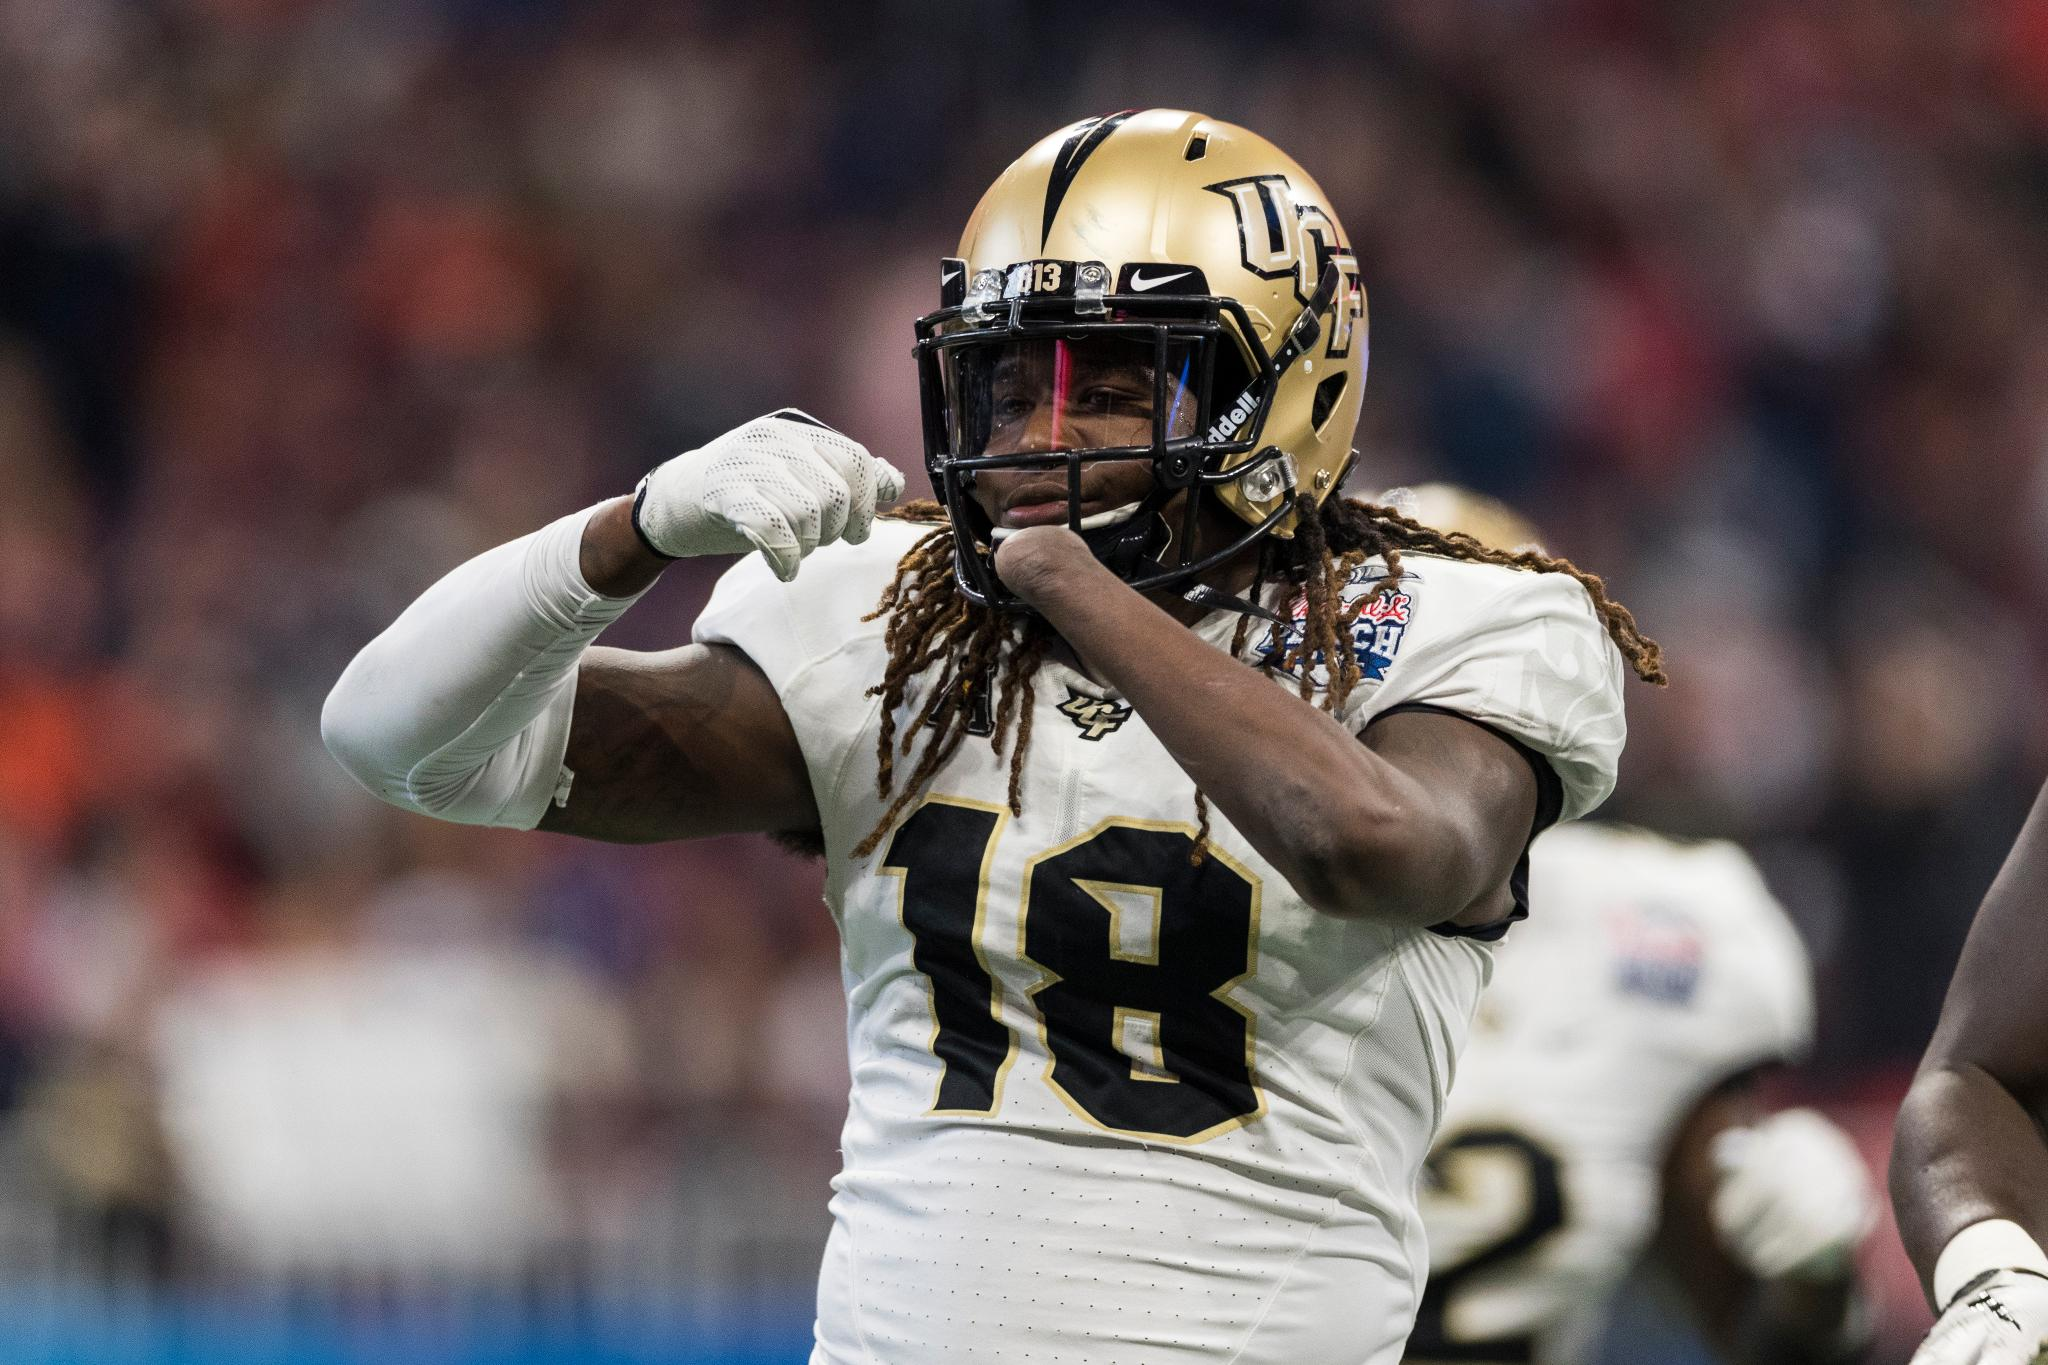 UCF's Shaquem Griffin wins inaugural Jason Witten Collegiate Man Of The Year Award.   https://t.co/lzeLMccmSw https://t.co/uSnzSQKNZB